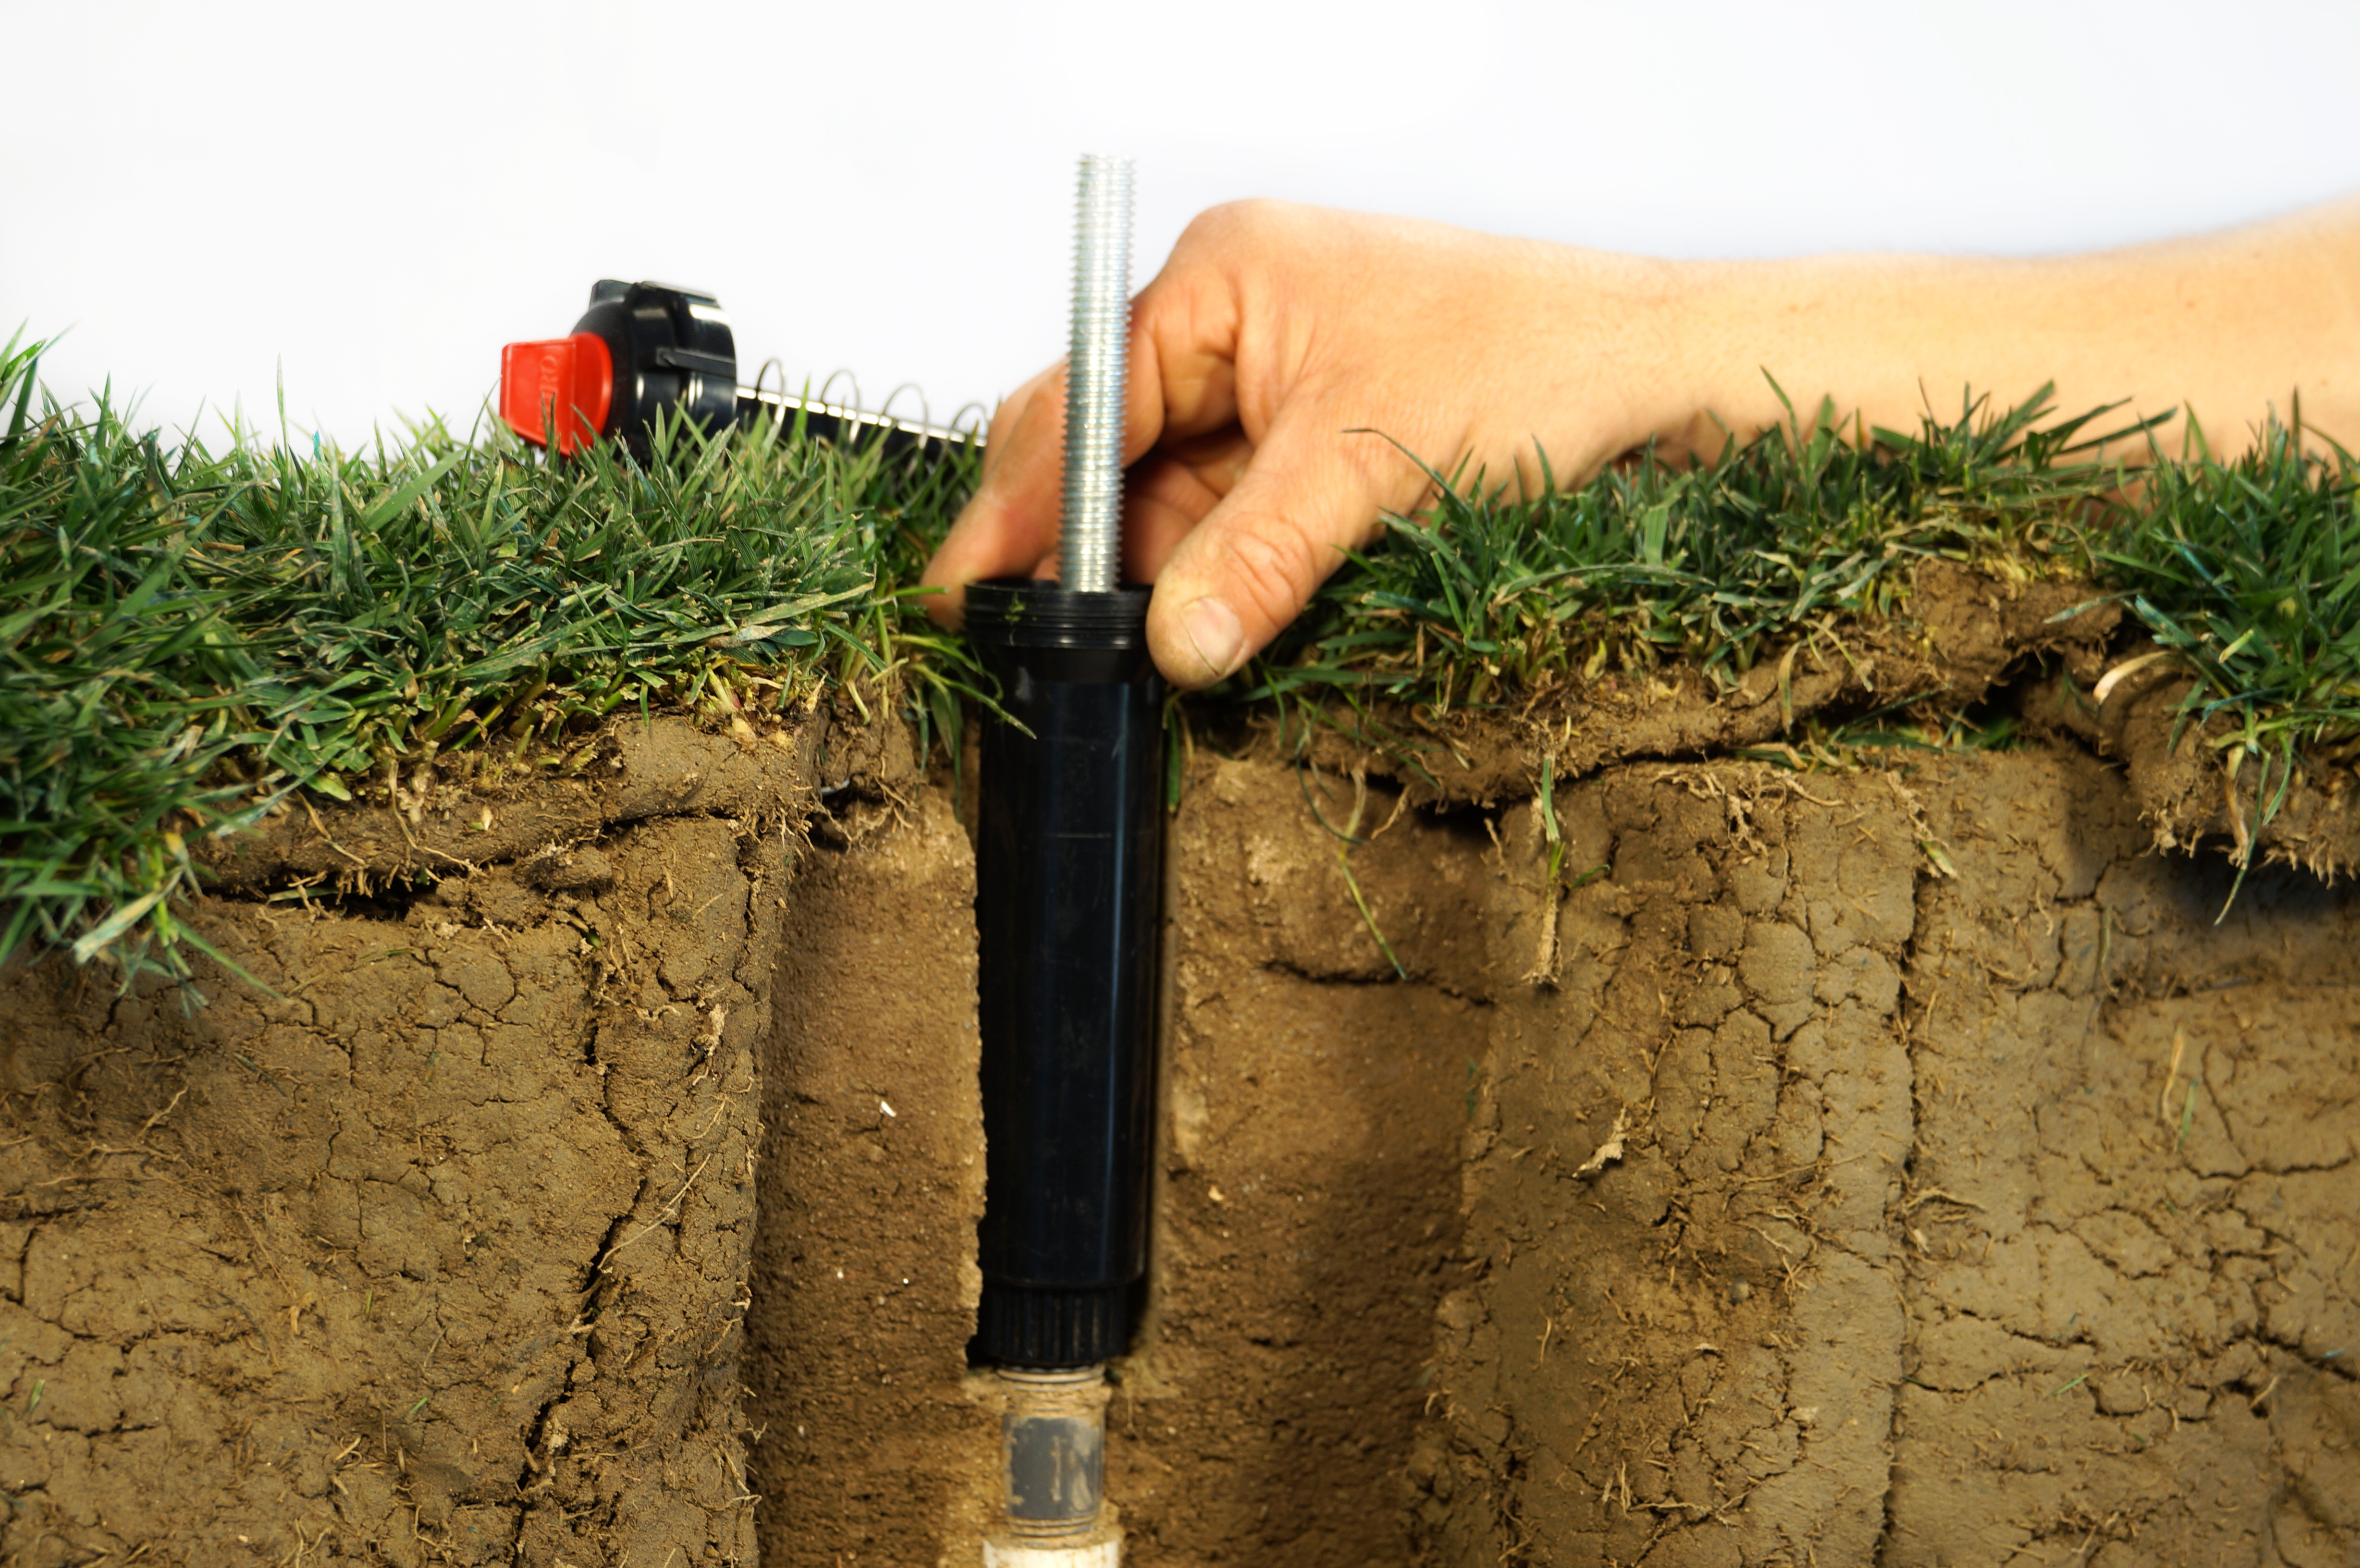 easy out sprinkler removal tool